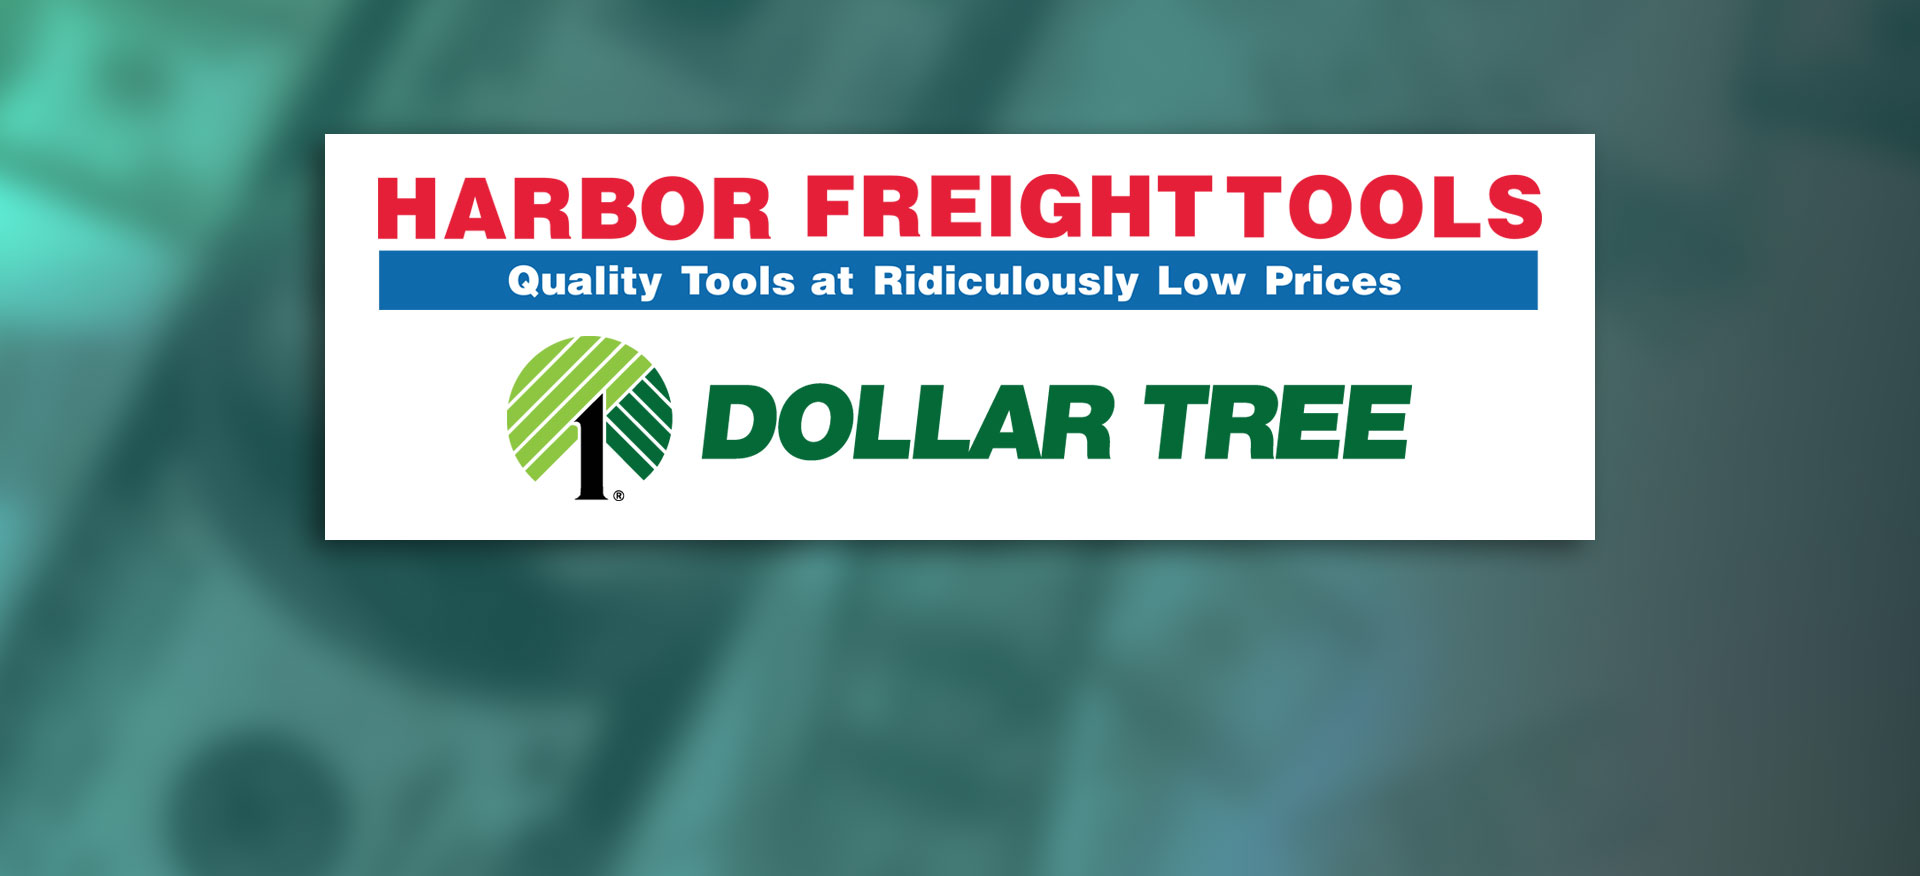 dollar tree logistics Dollar tree is committed to working closely with our vendors to ensure that all requirements are met for achieving our goal of a cost-efficient supply chain.